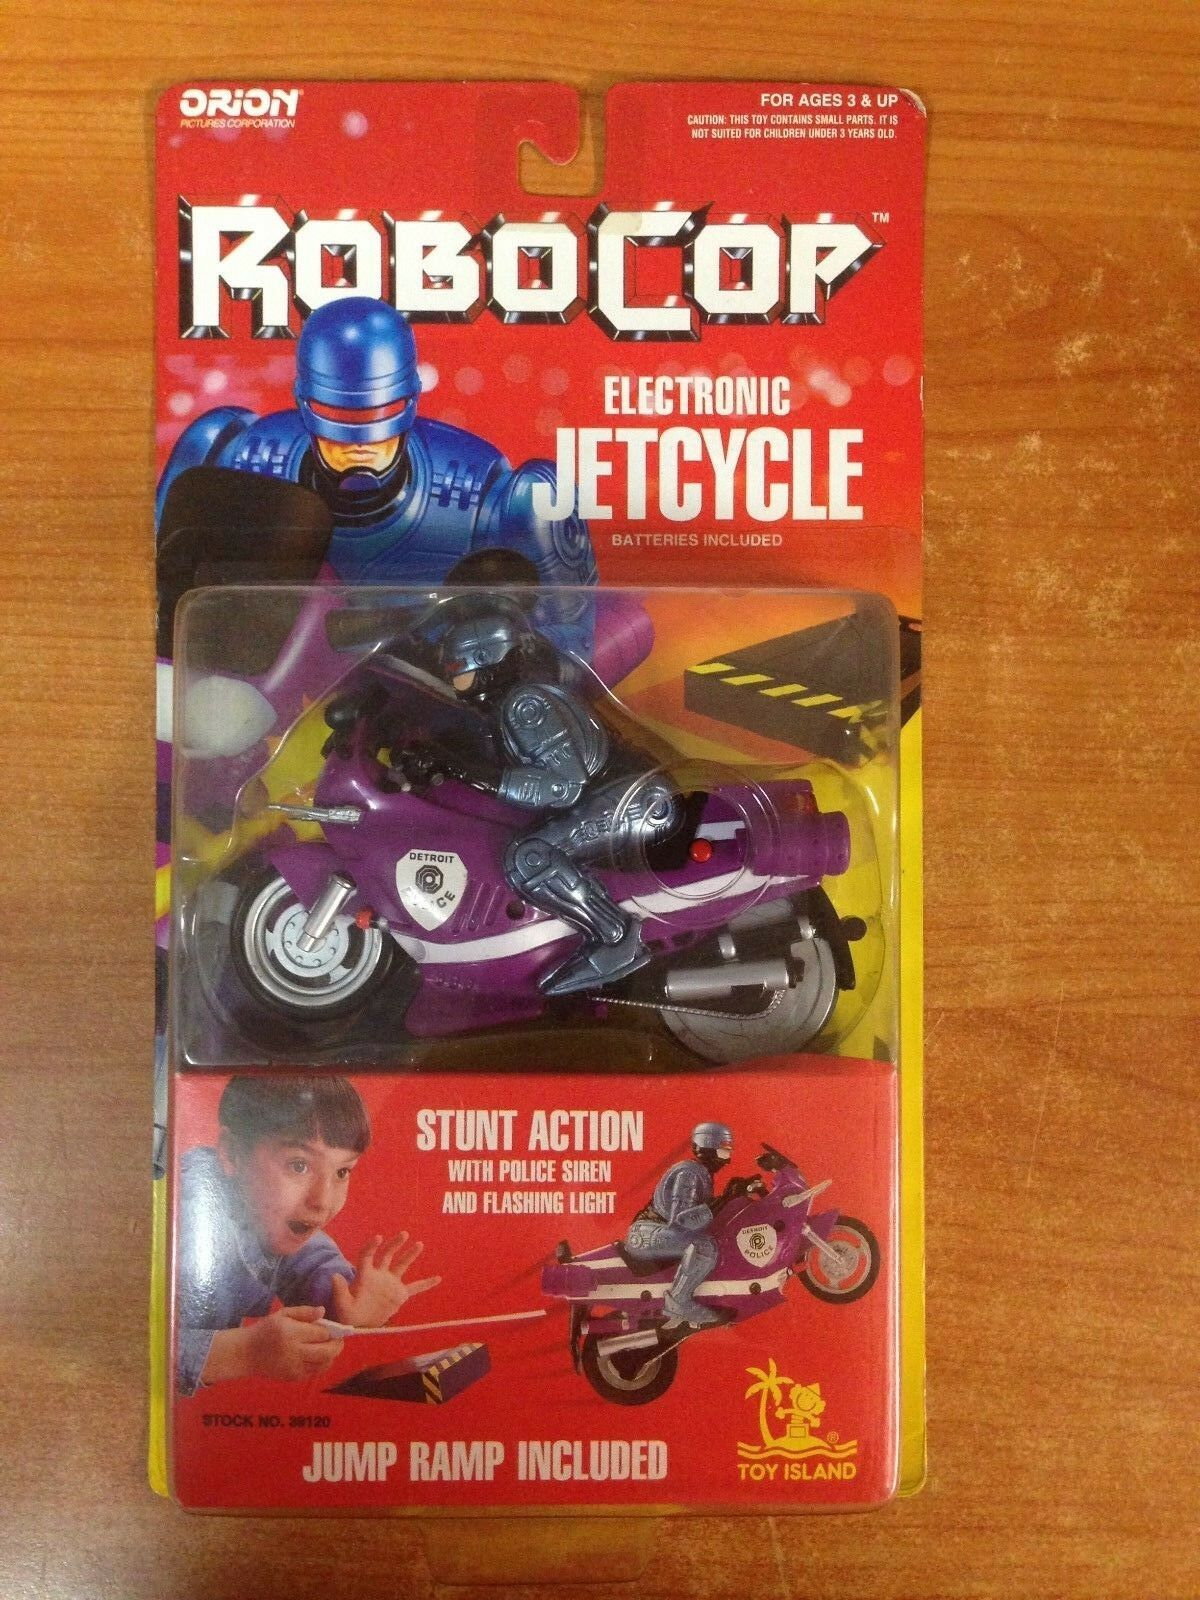 Vintage 1994 Robocop Electronic Jet Cycle Action Figure MOSC